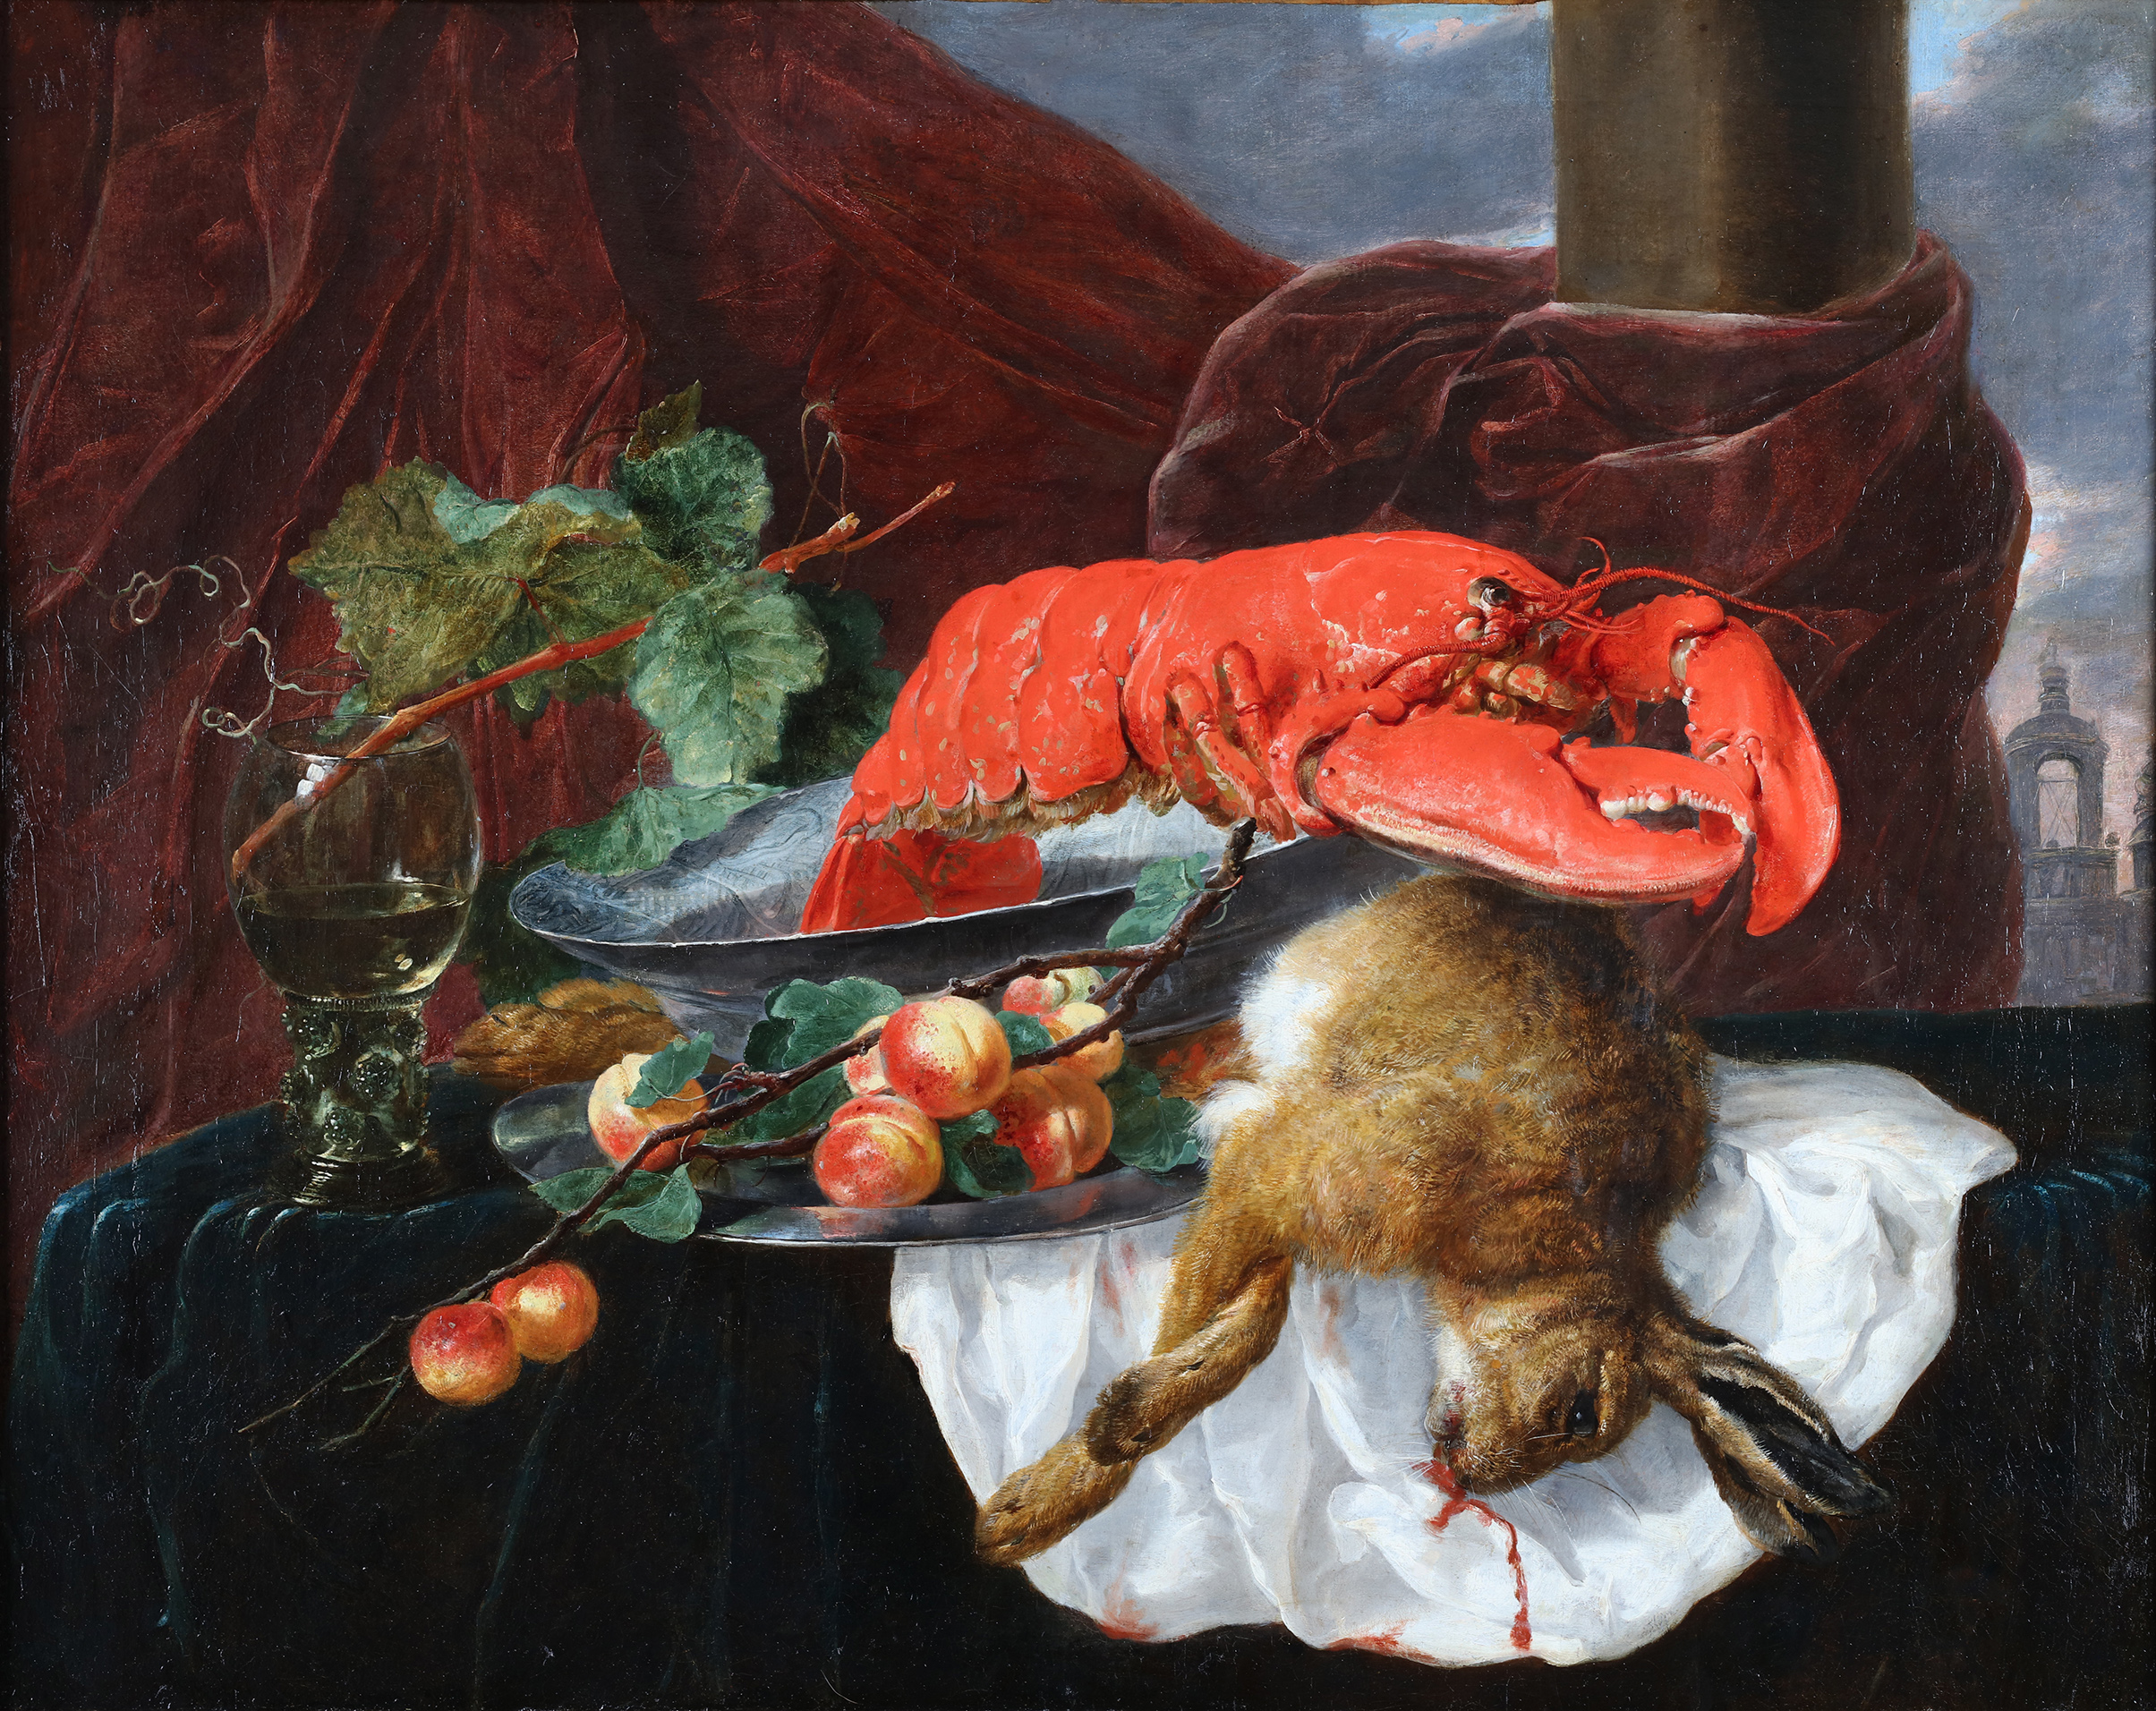 Still life with a lobster, dead hare, a roomer and peaches on a table ledge